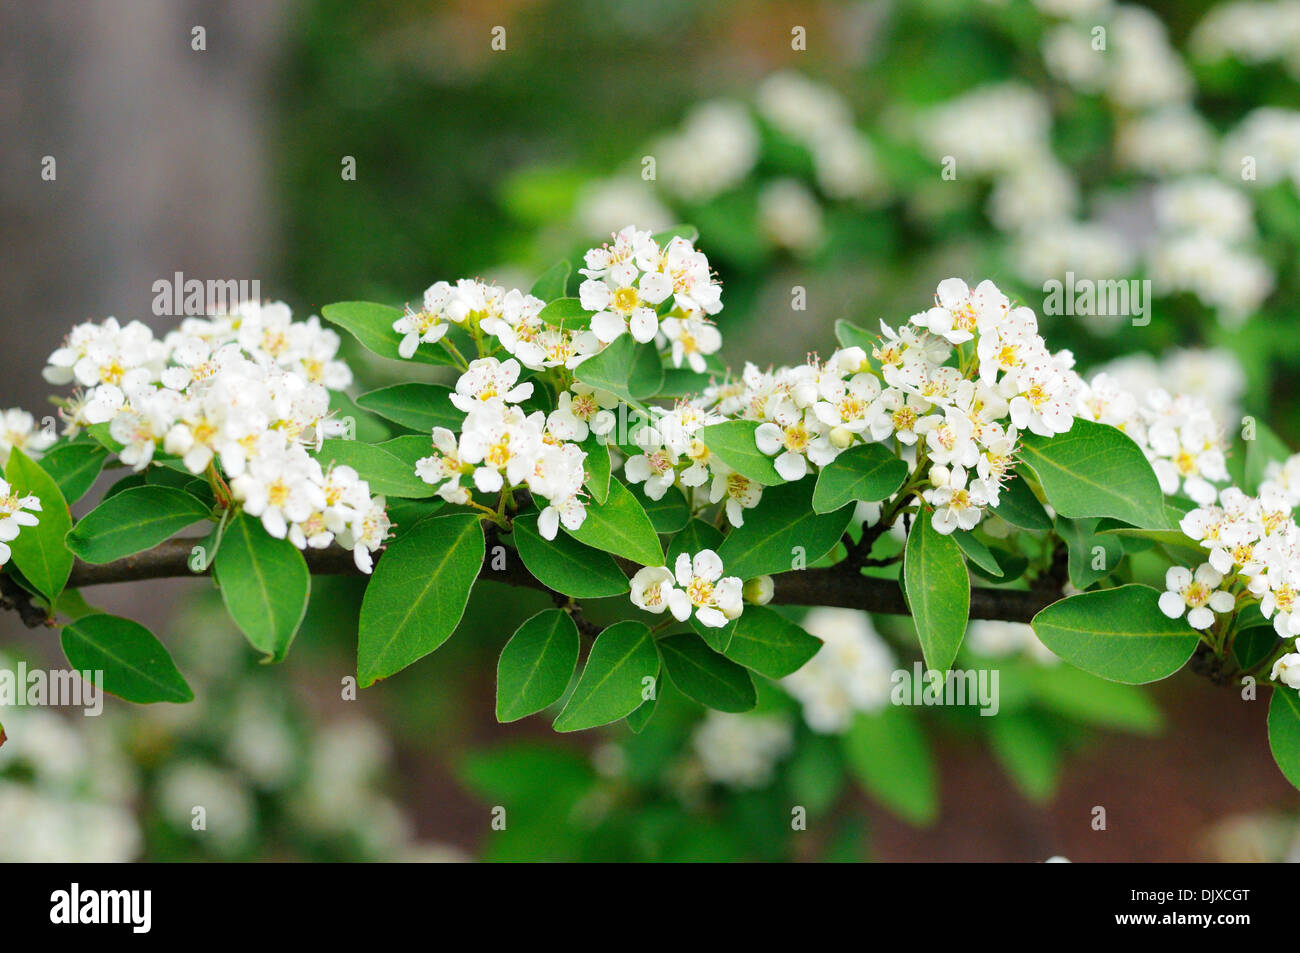 Generous white flowering cherry tree varieties contemporary great white flowering cherry pictures inspiration images for mightylinksfo Images